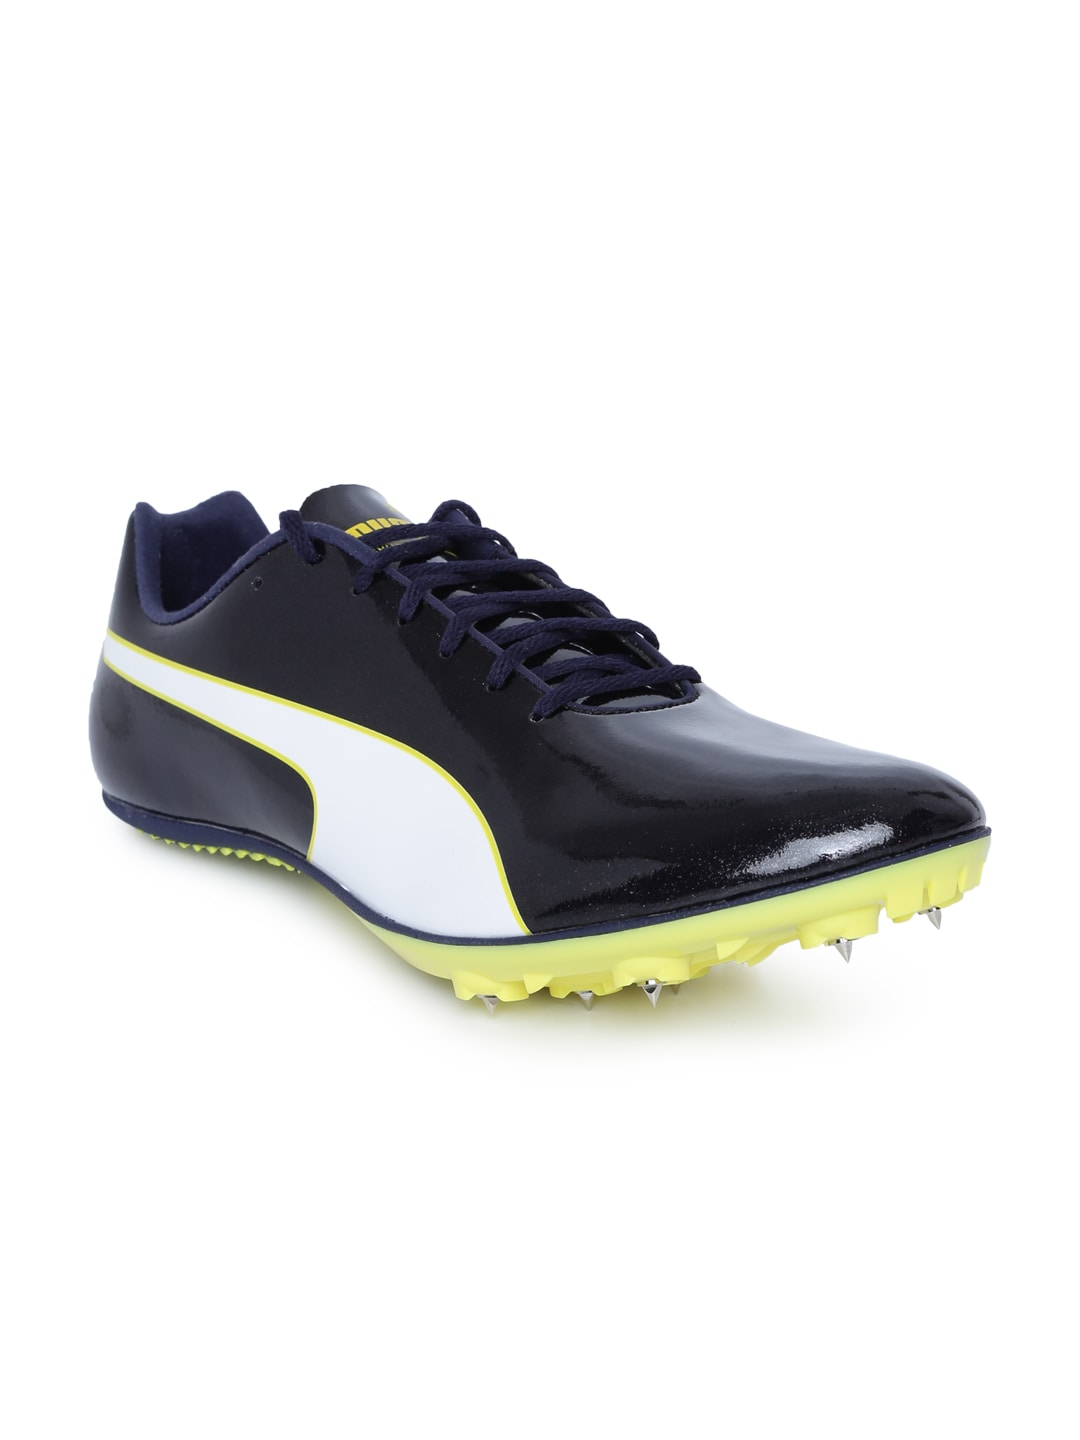 097a4fbdc353 Sports Shoes for Women - Buy Women Sports Shoes Online